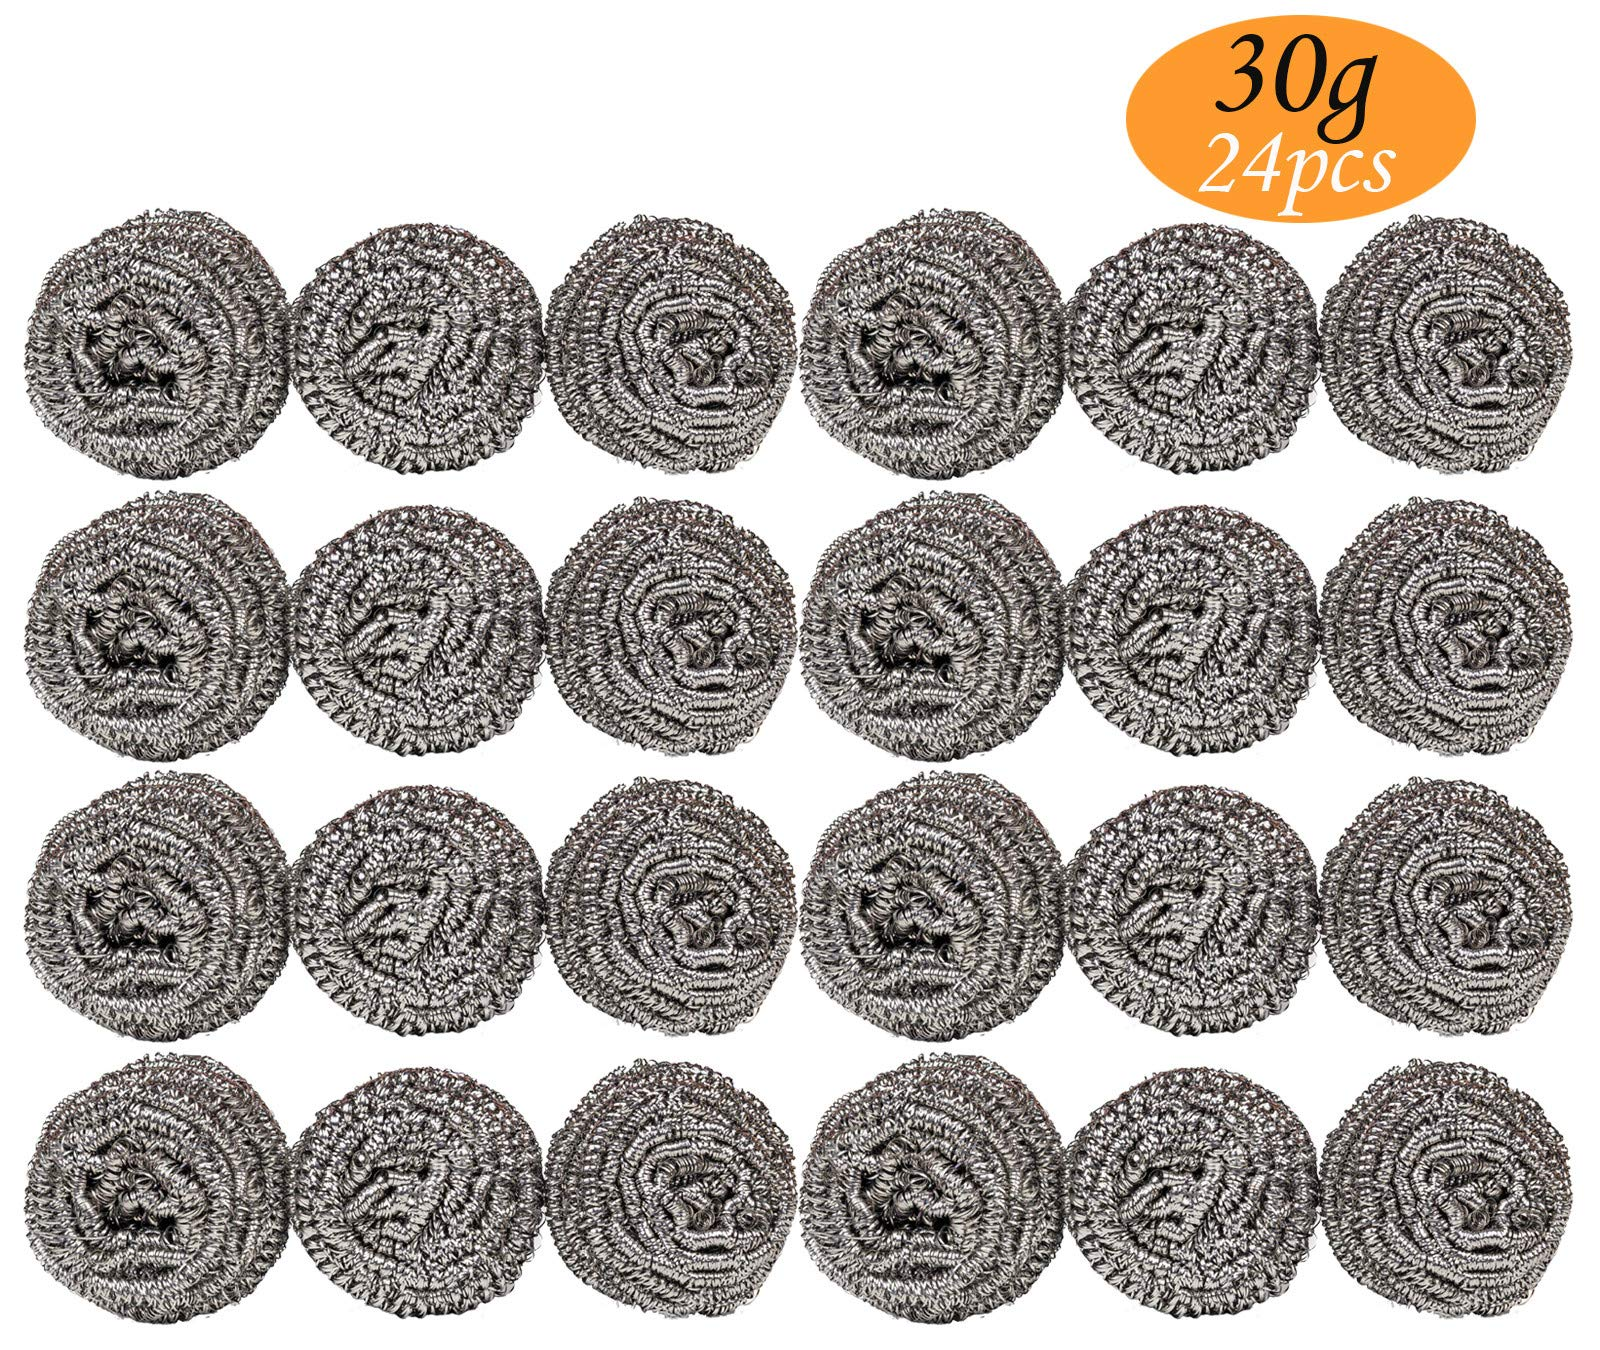 24 Pack 30g Stainless Steel Sponges - Stainless Steel Scouring Pad, Steel Wool Scrubber, Metal Scrubbers for Pans, Steel Wool Soap Pads, Cooking Utensil Cleaning Tools for Kitchens, Bathroom etc